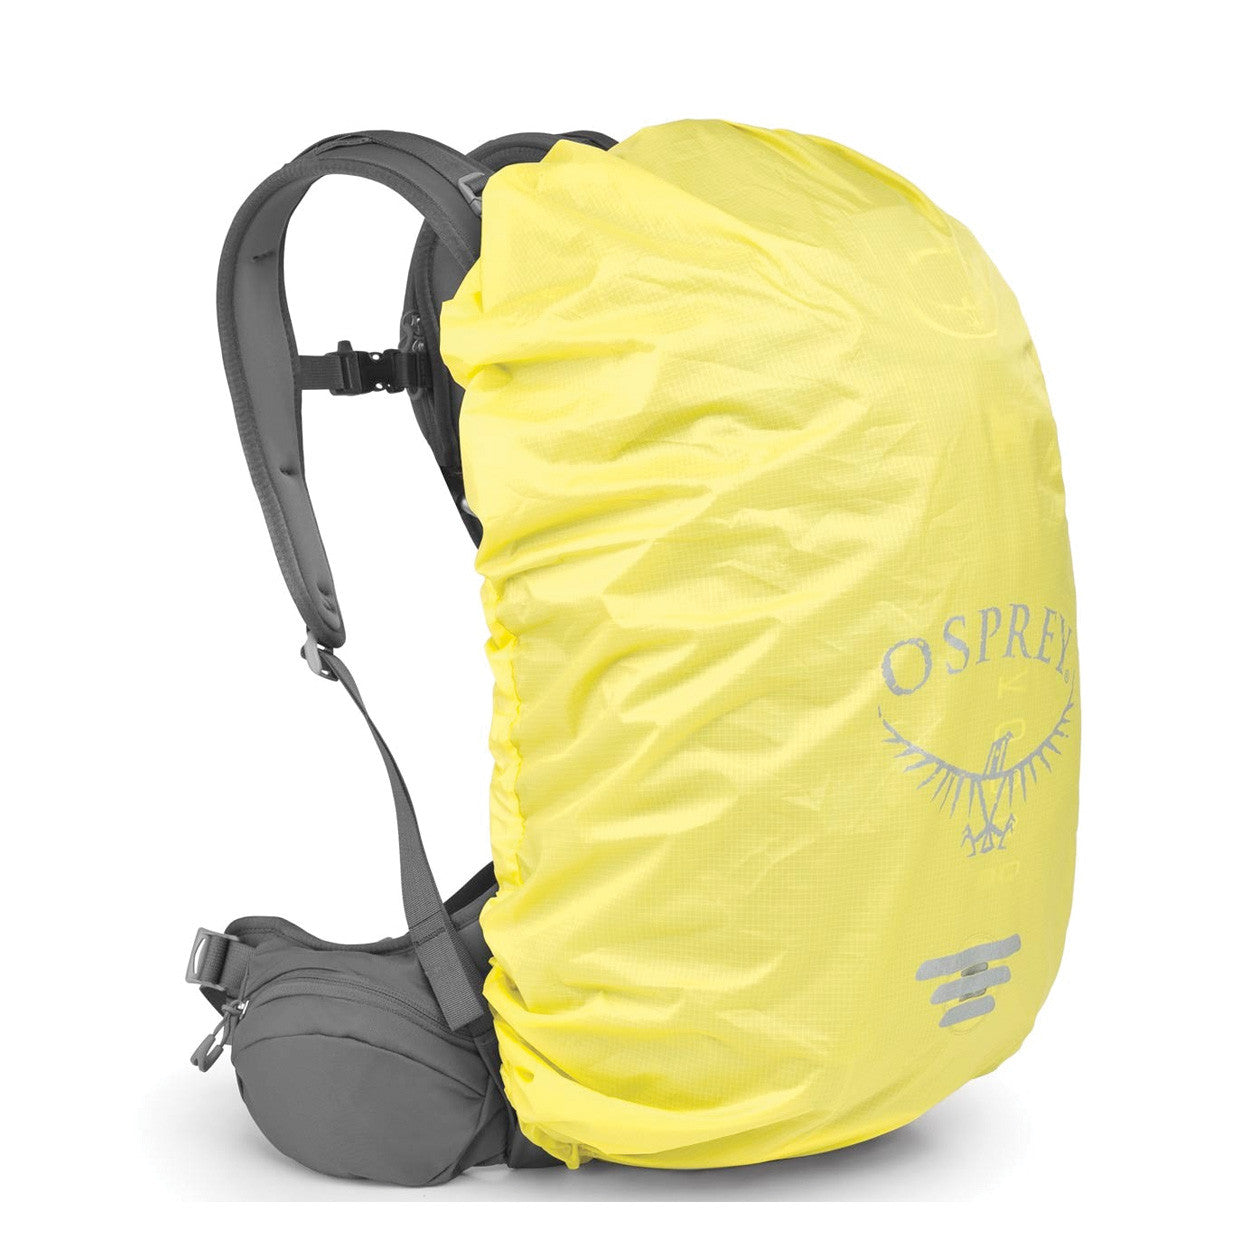 3aaaa6a6850 Osprey Hi-vis Raincover - wet weather pack protector - Ground Effect